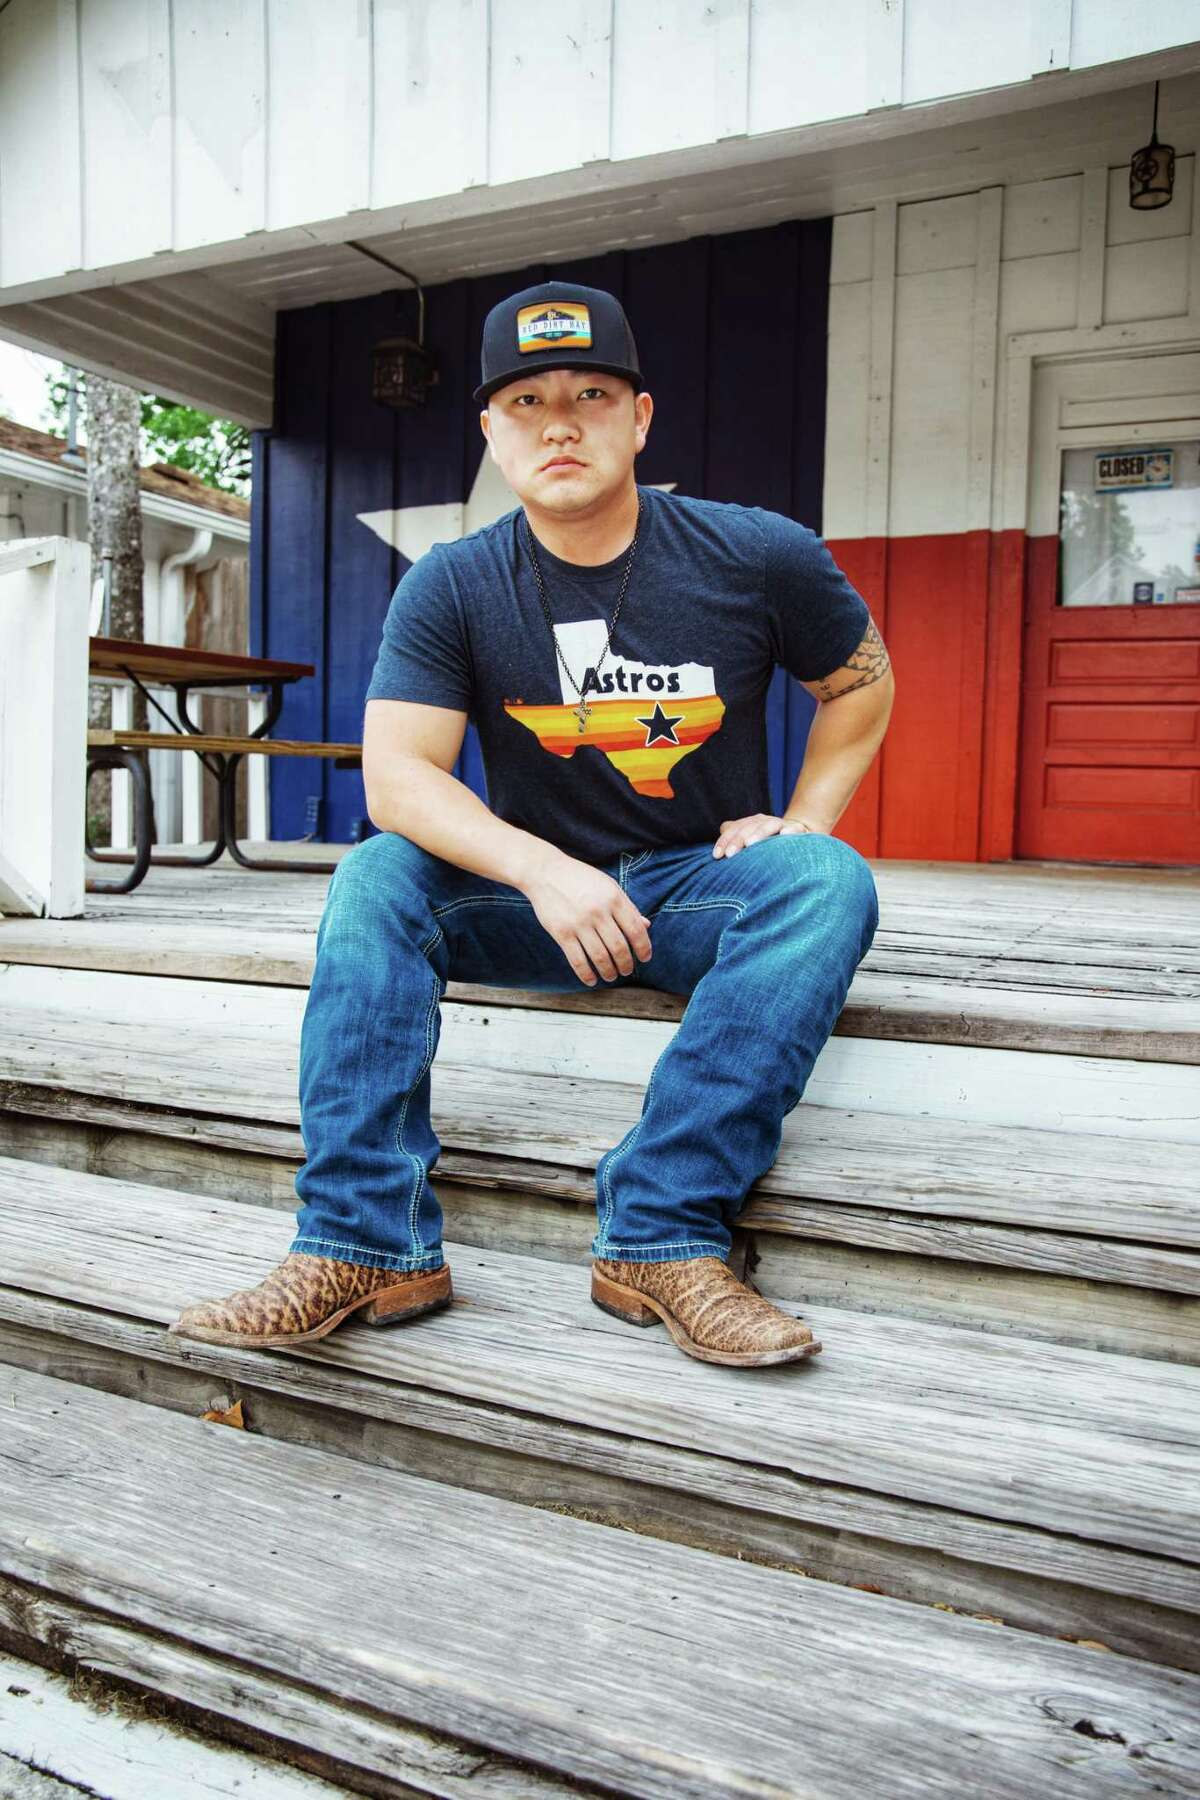 Oklahoma native Cody Hibbard's music career took off once he moved to Conroe and began playing local open mic nights. Now he has a full EP and on April 23 released